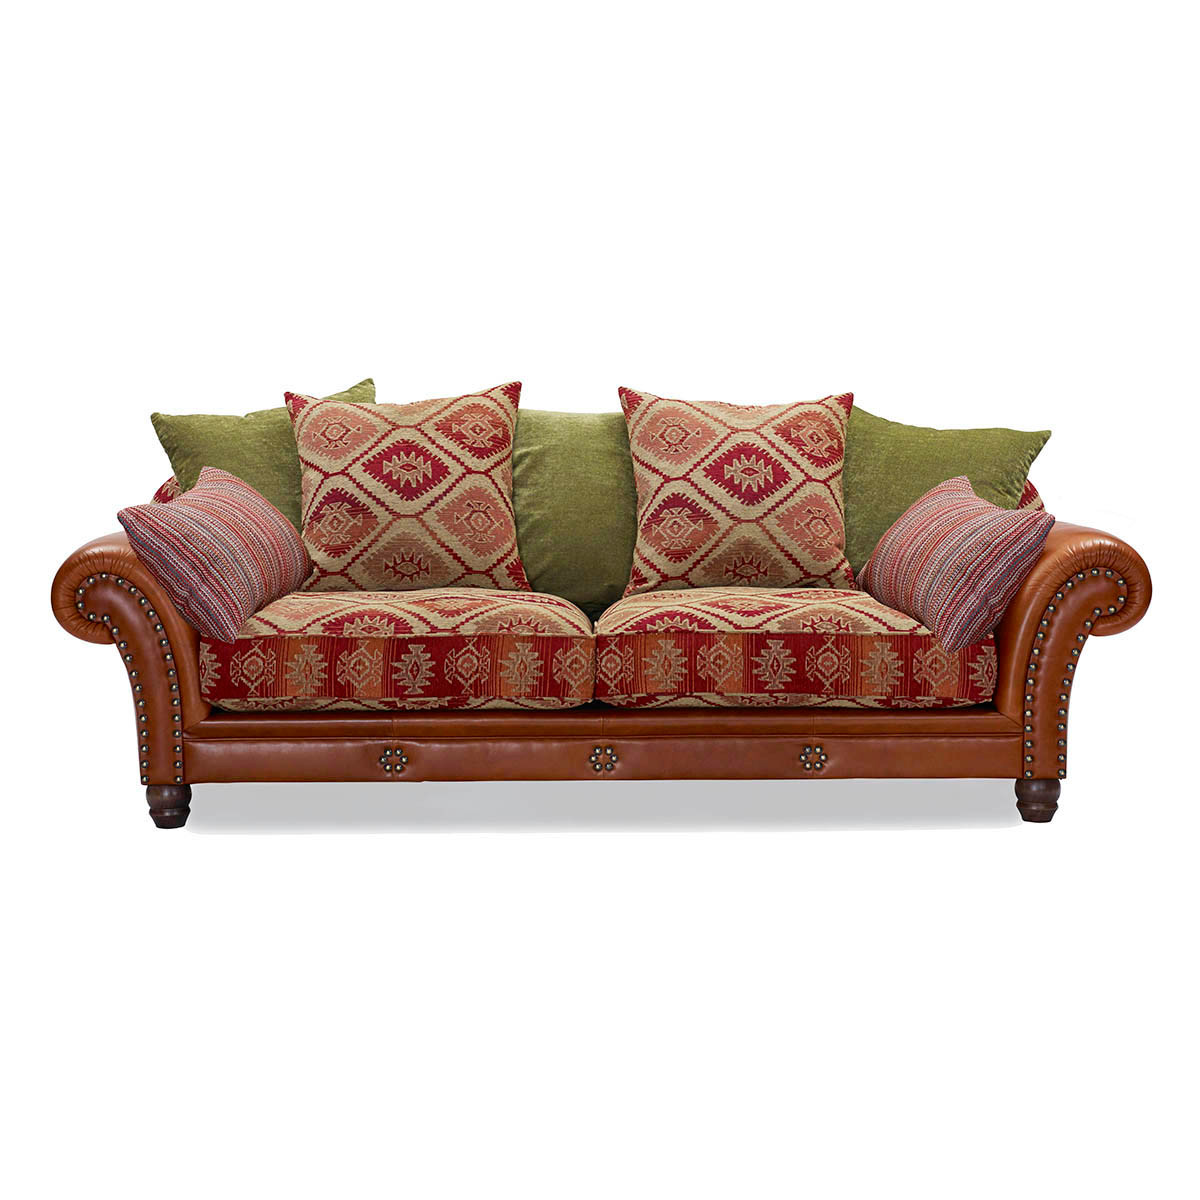 Sofas Online Shop Eastwood 3 Seater Sofa